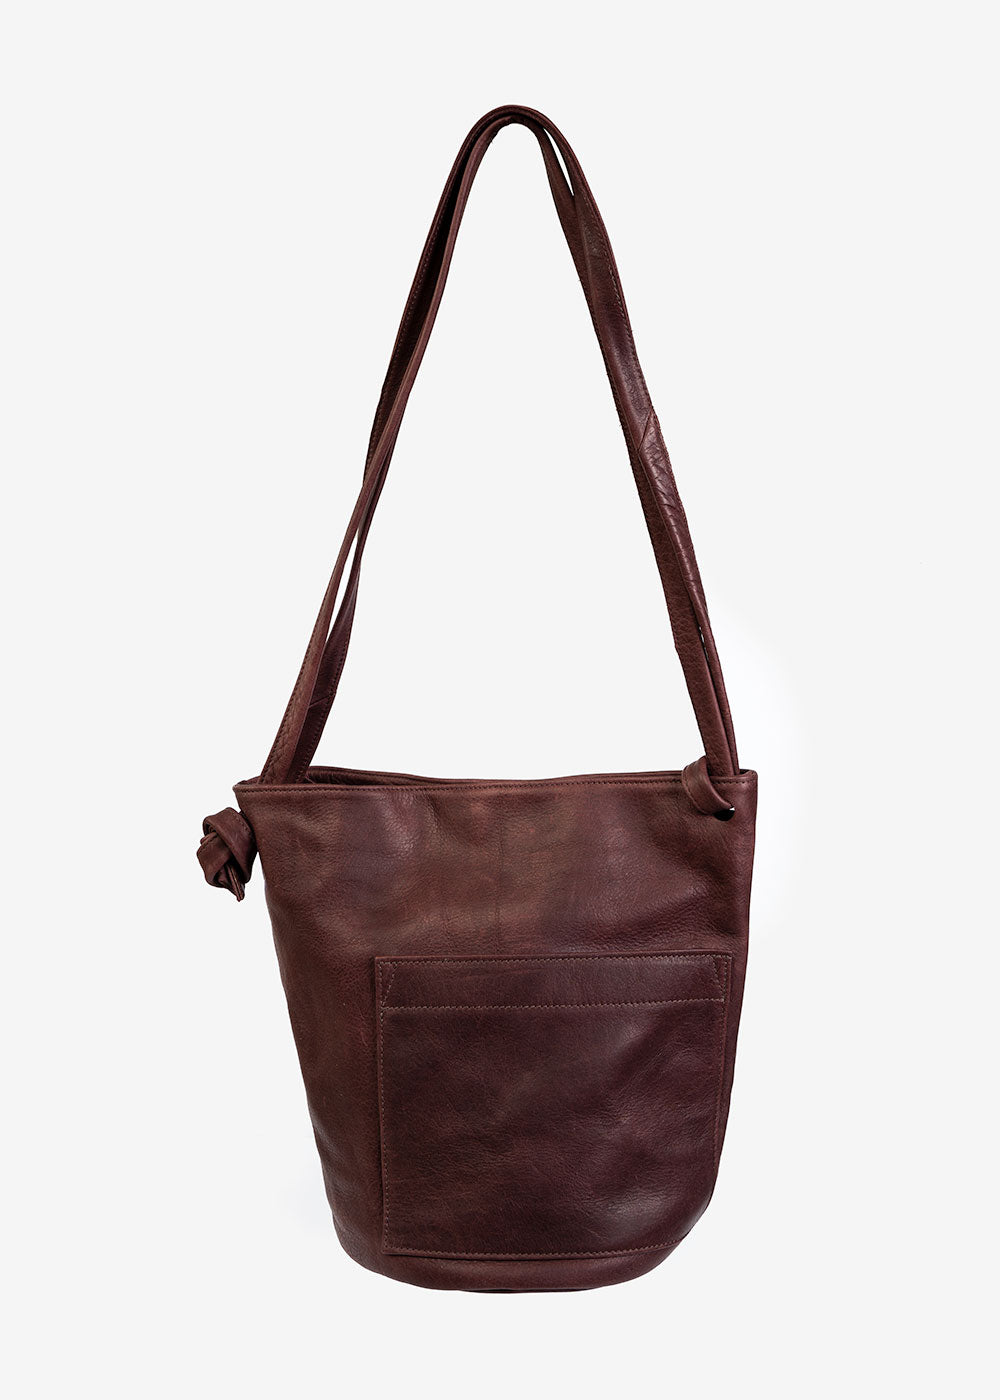 Erin Templeton Wine Crossbody Bucket Bag — Shop sustainable fashion and slow fashion at New Classics Studios